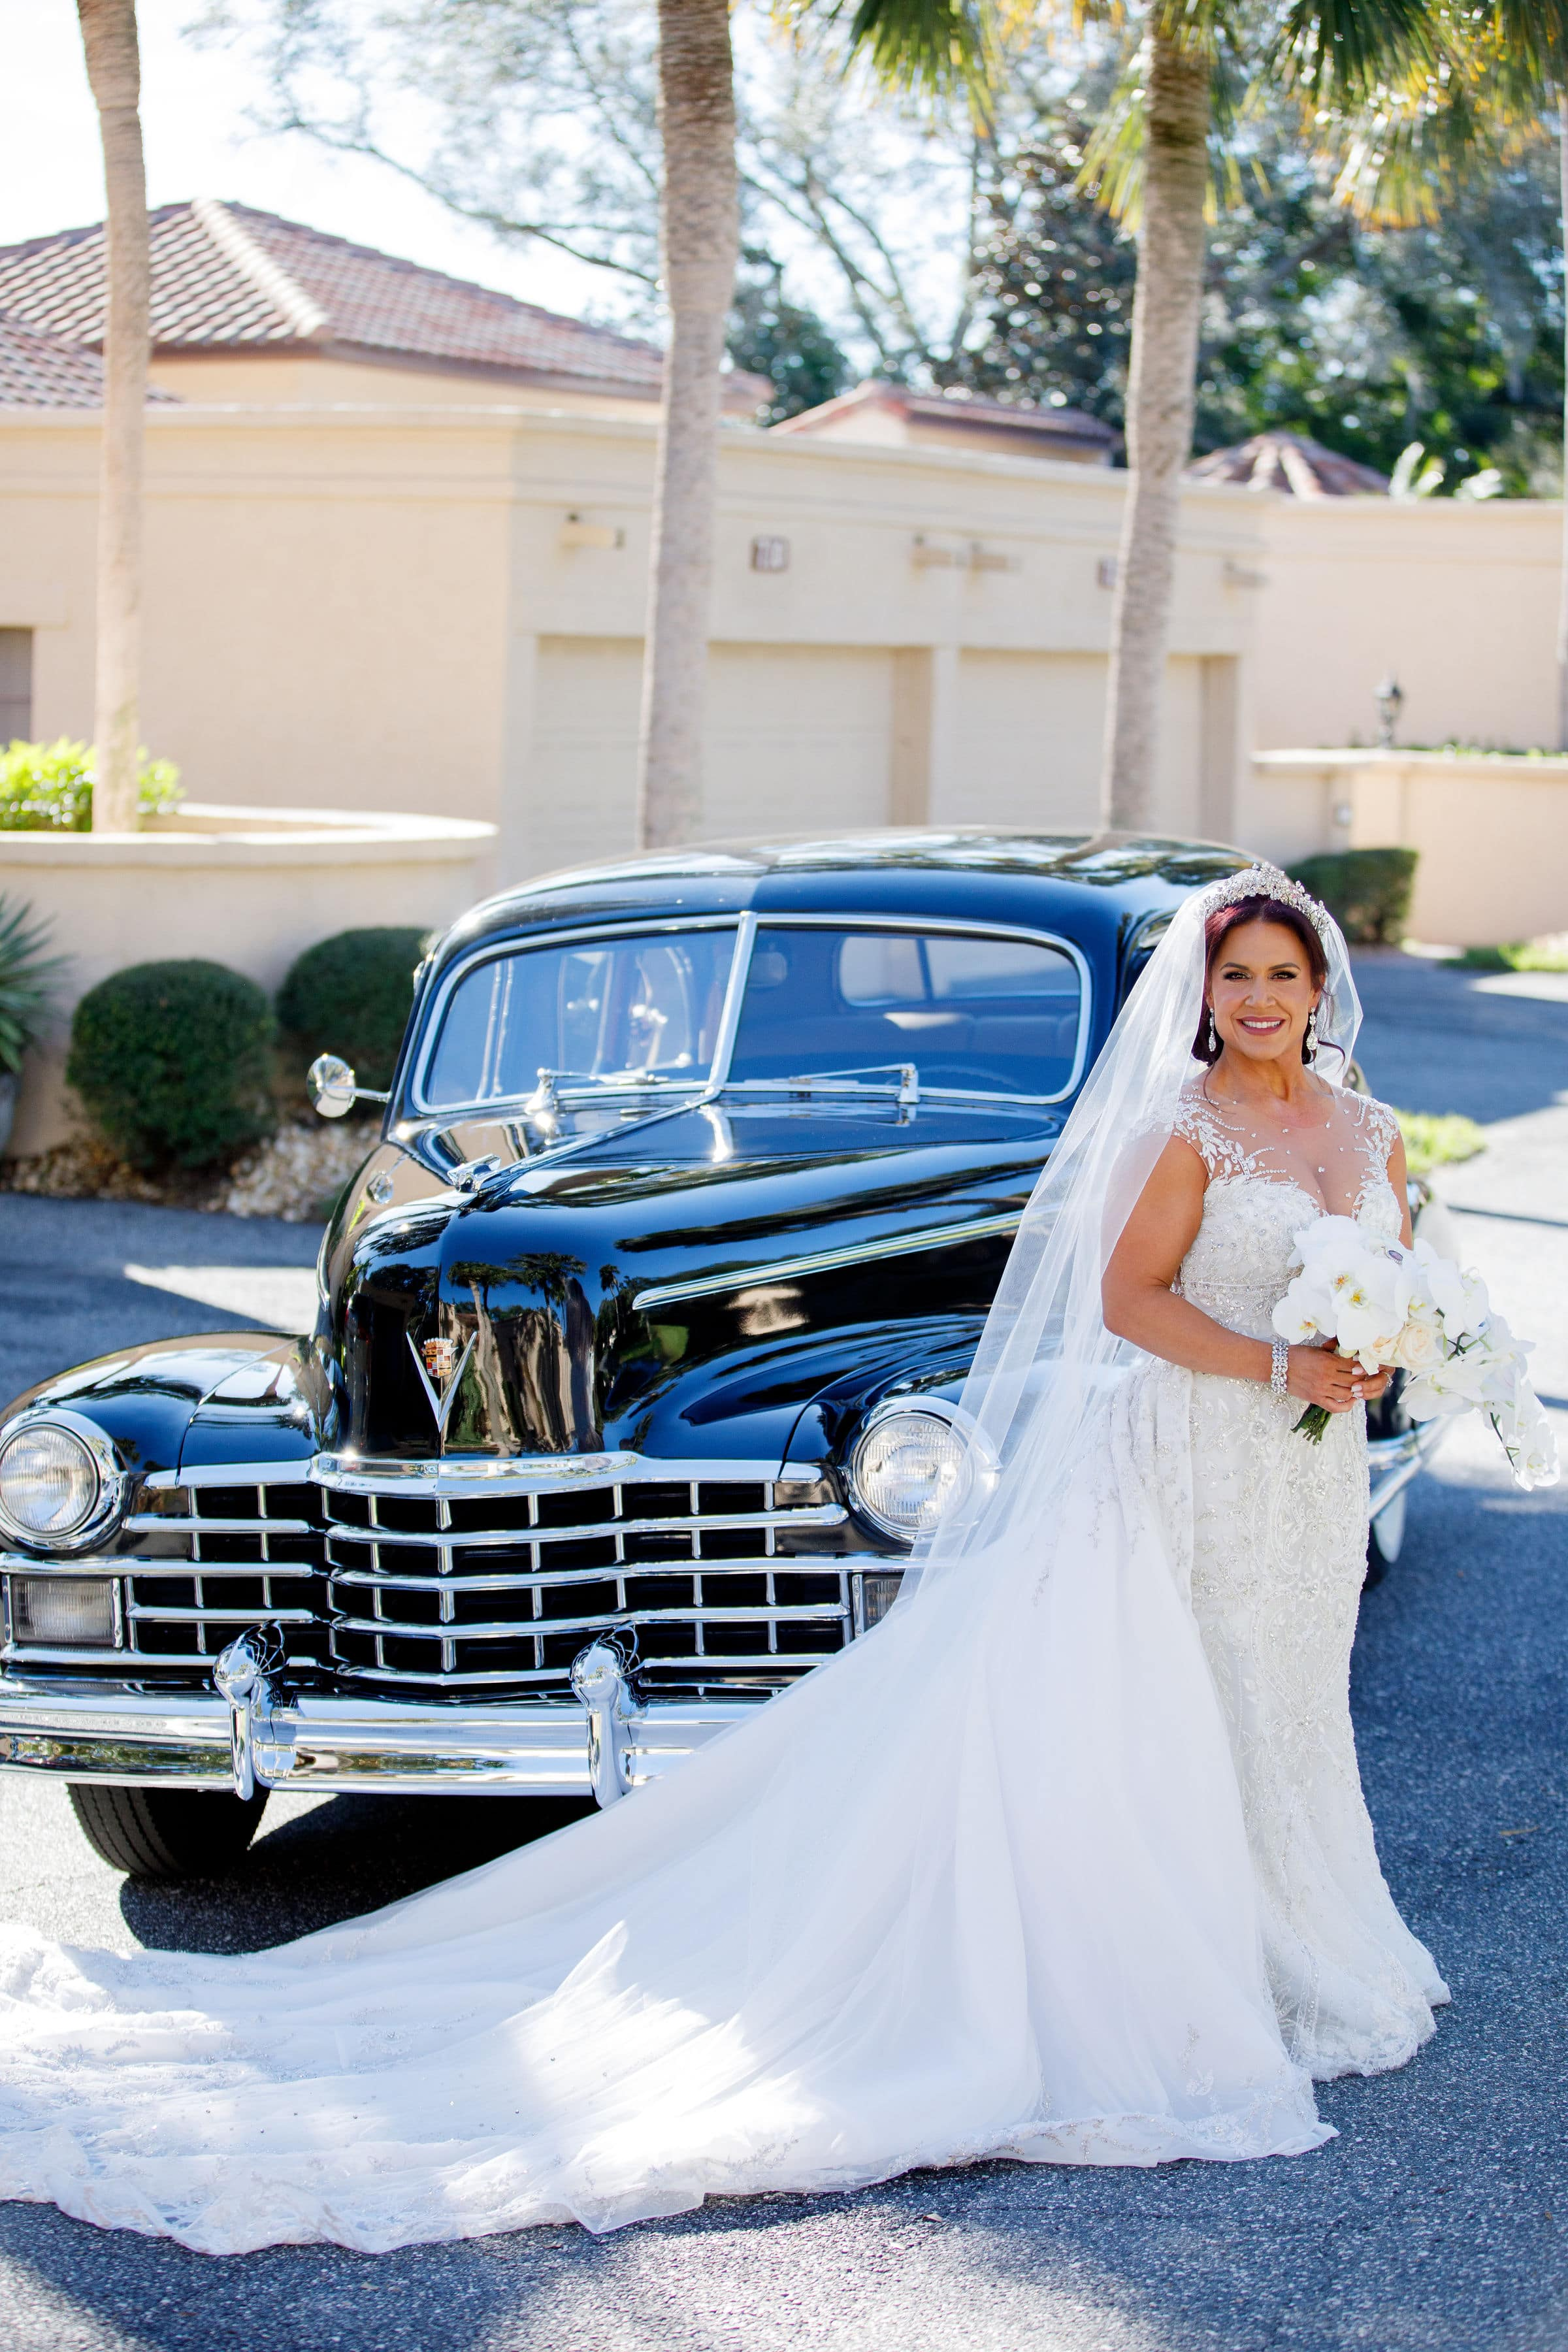 Bride in front of a black Cadillac limousine